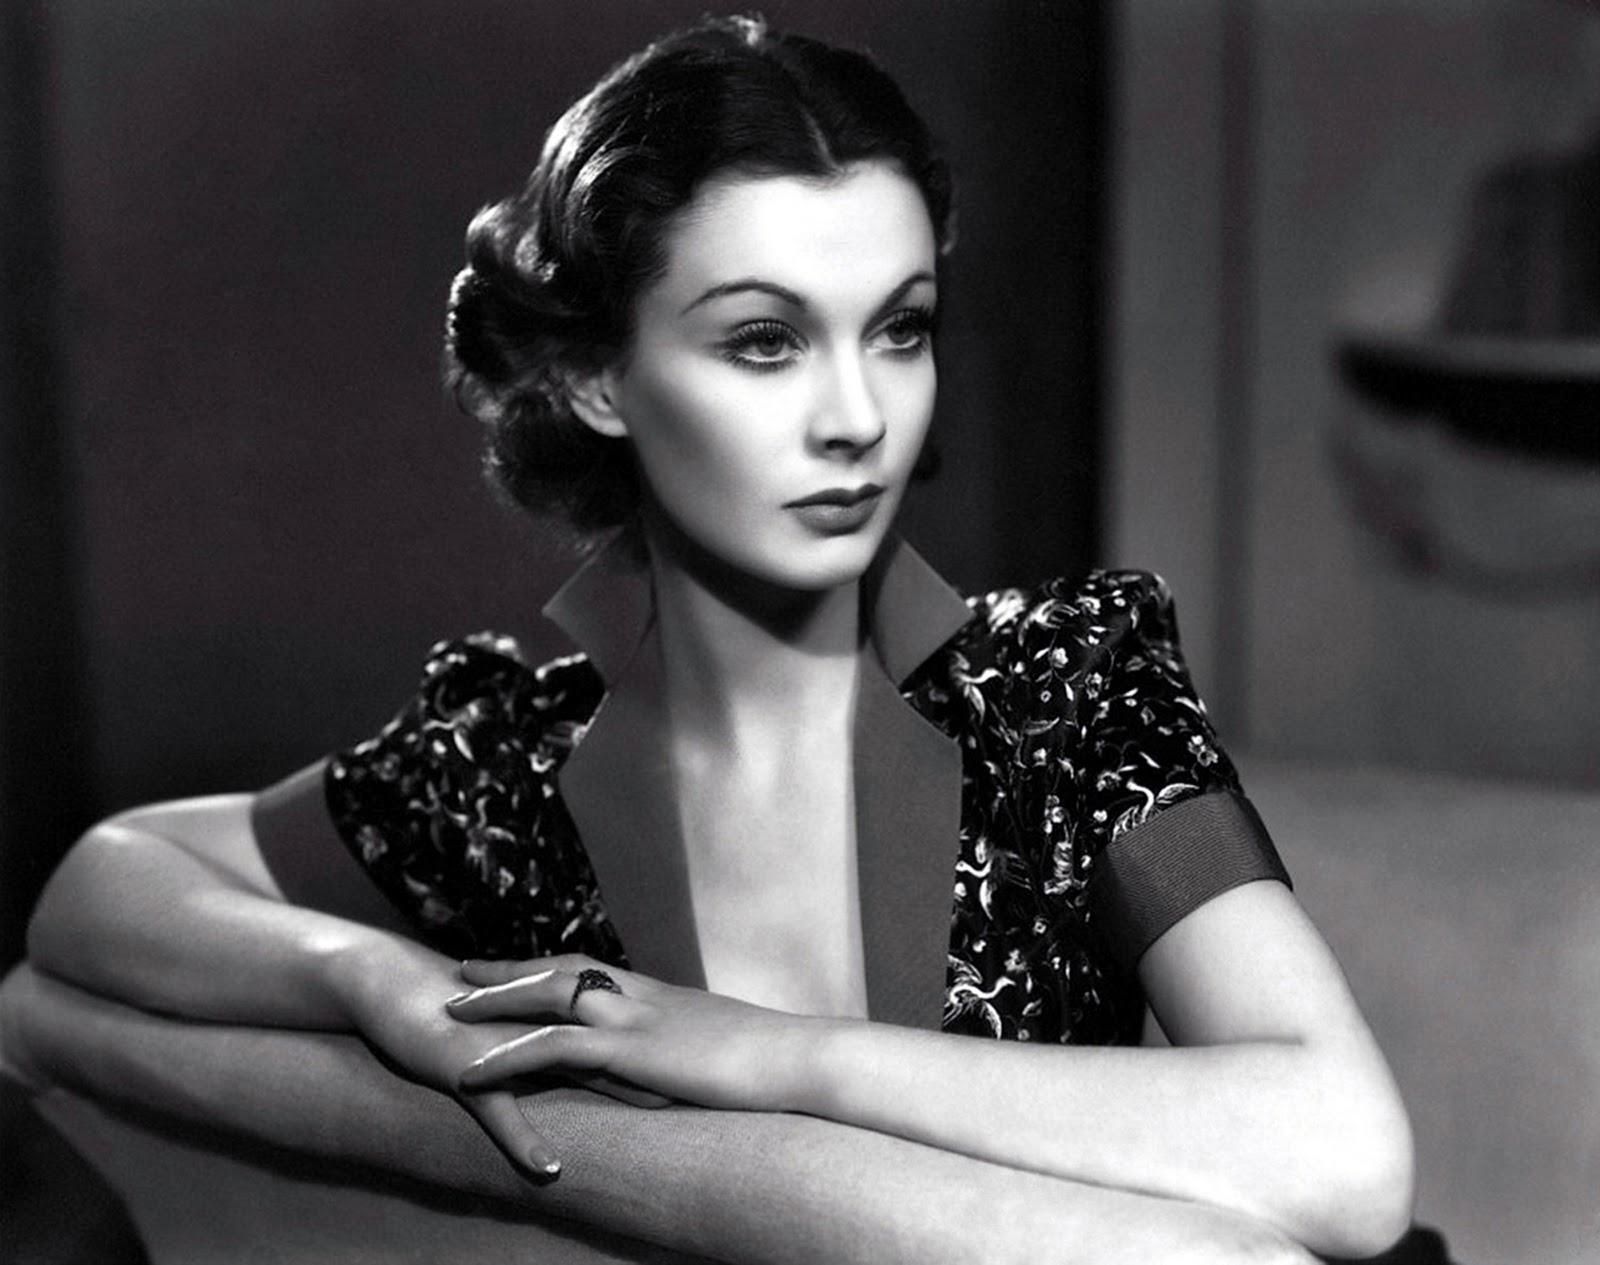 Vivien Leigh Wallpaper and Background Image | 1600x1265 | ID:633654 ...